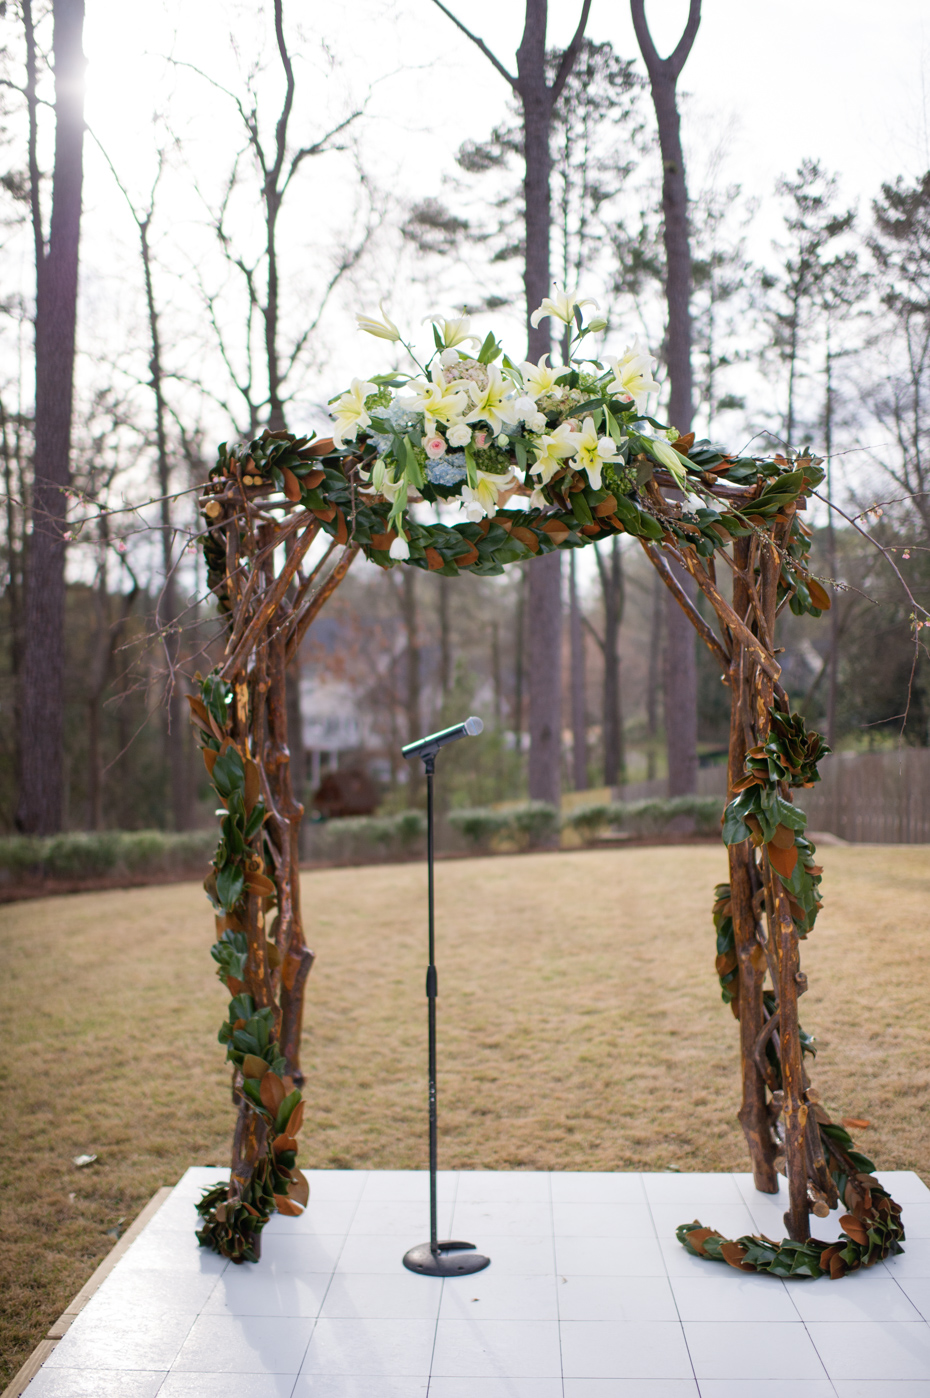 Backyard wedding decor